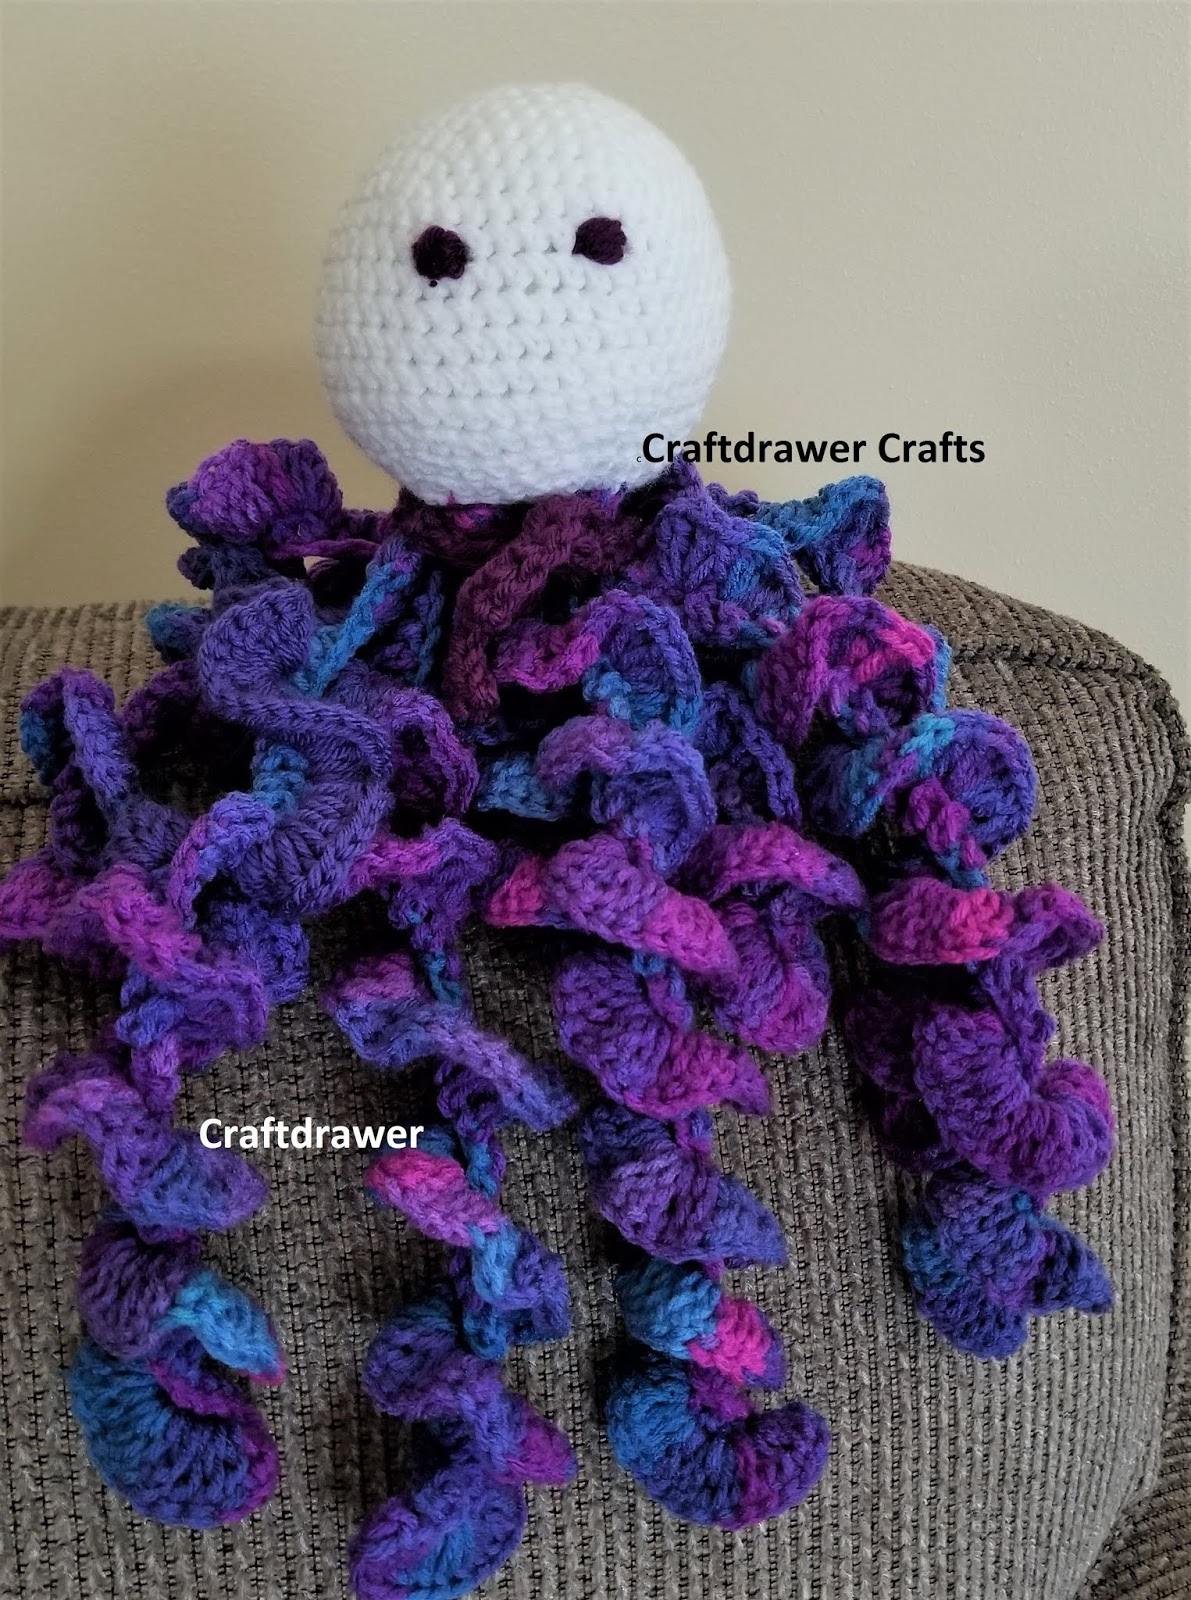 Crochet An Octopus With The Free Solidarity Octopus Pattern Download